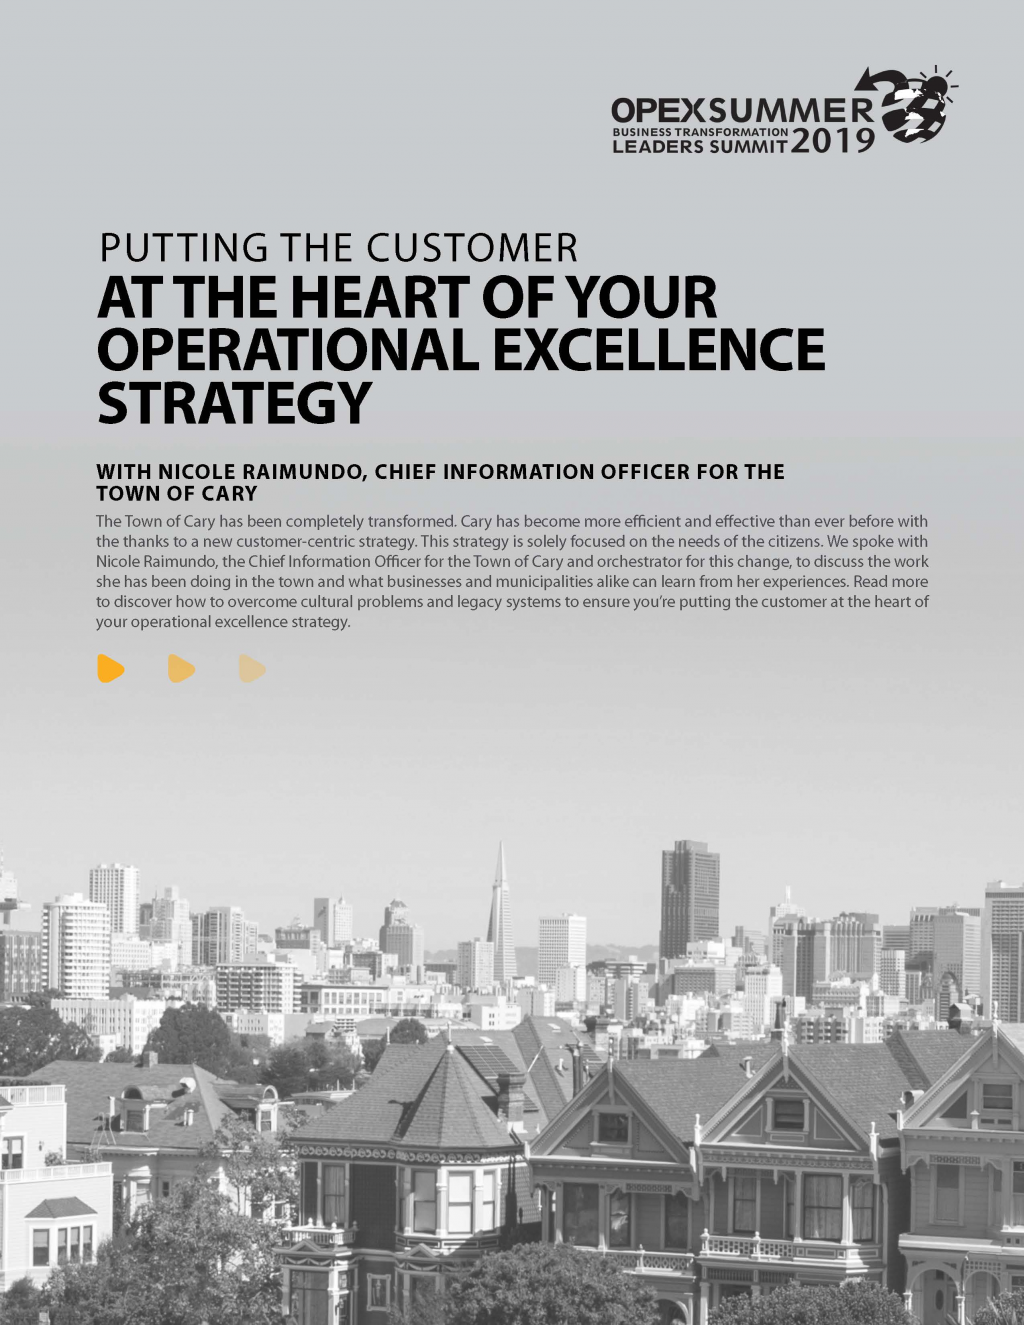 OPEX Summer | Putting the Customer at the Heart of your OPEX Journey